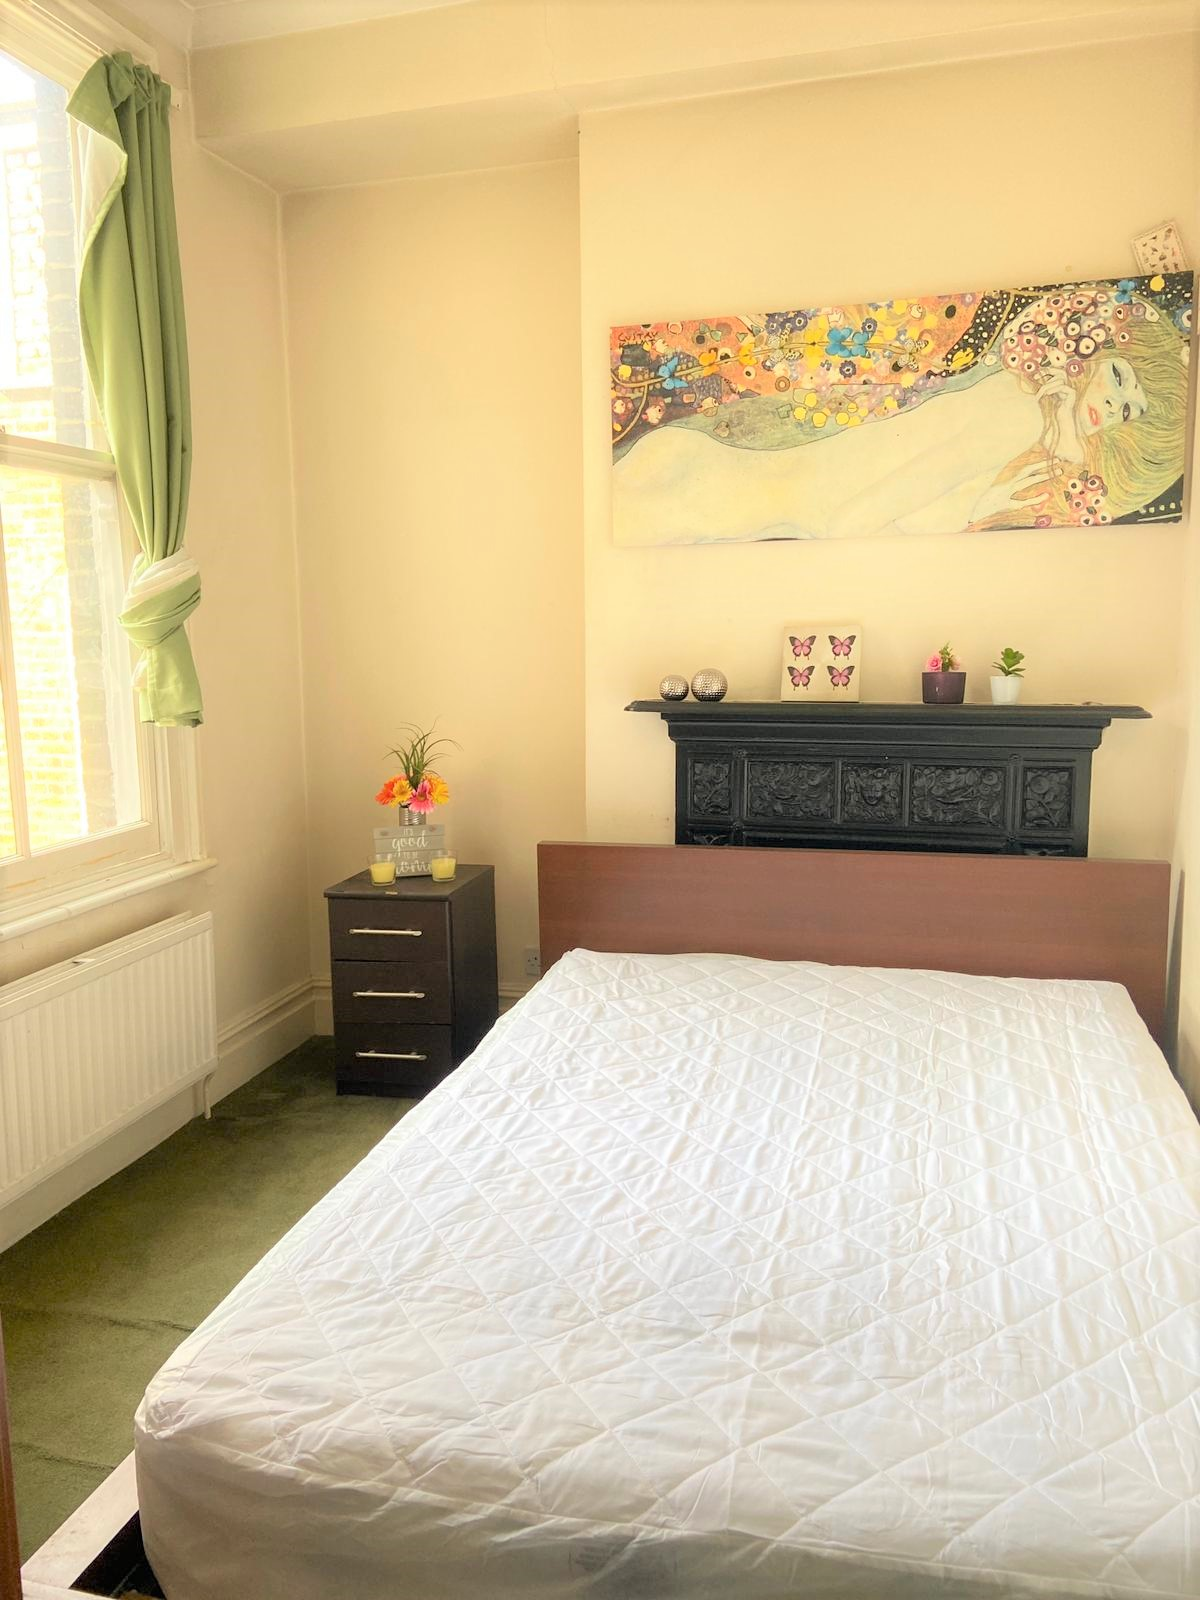 1 bed flat share to rent in Pennard Road, Shephards Bush, London 1